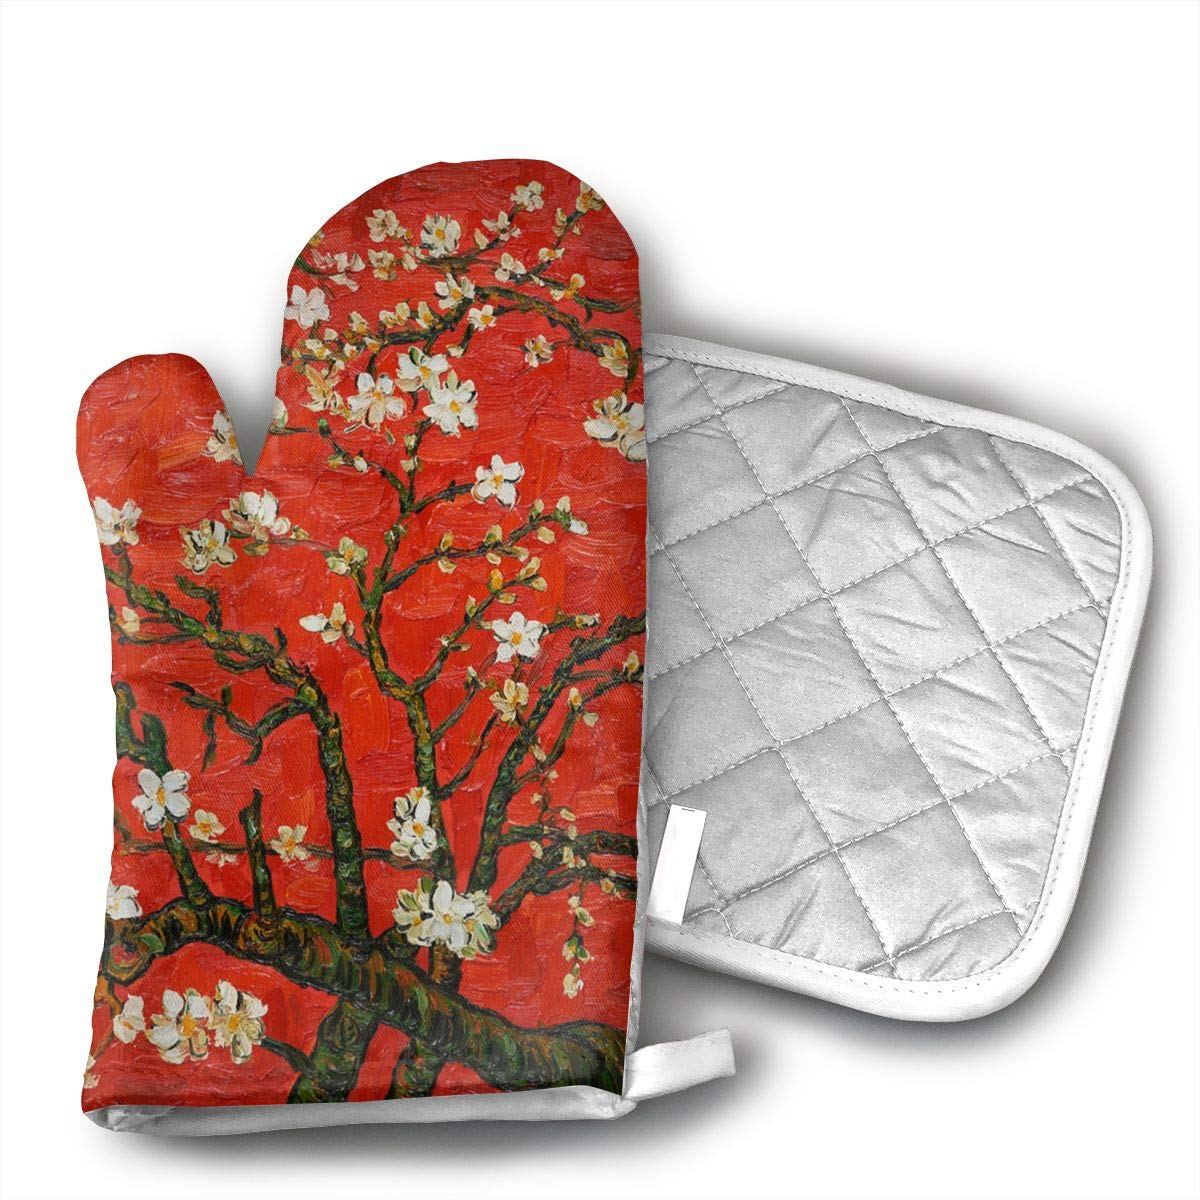 Klasl5 Cherry-Blossoms Oven Mitts,Heat Resistant Oven Gloves,Non-Slip Cooking Gloves,Washable Kitchen Mitts for Baking, Barbecue.